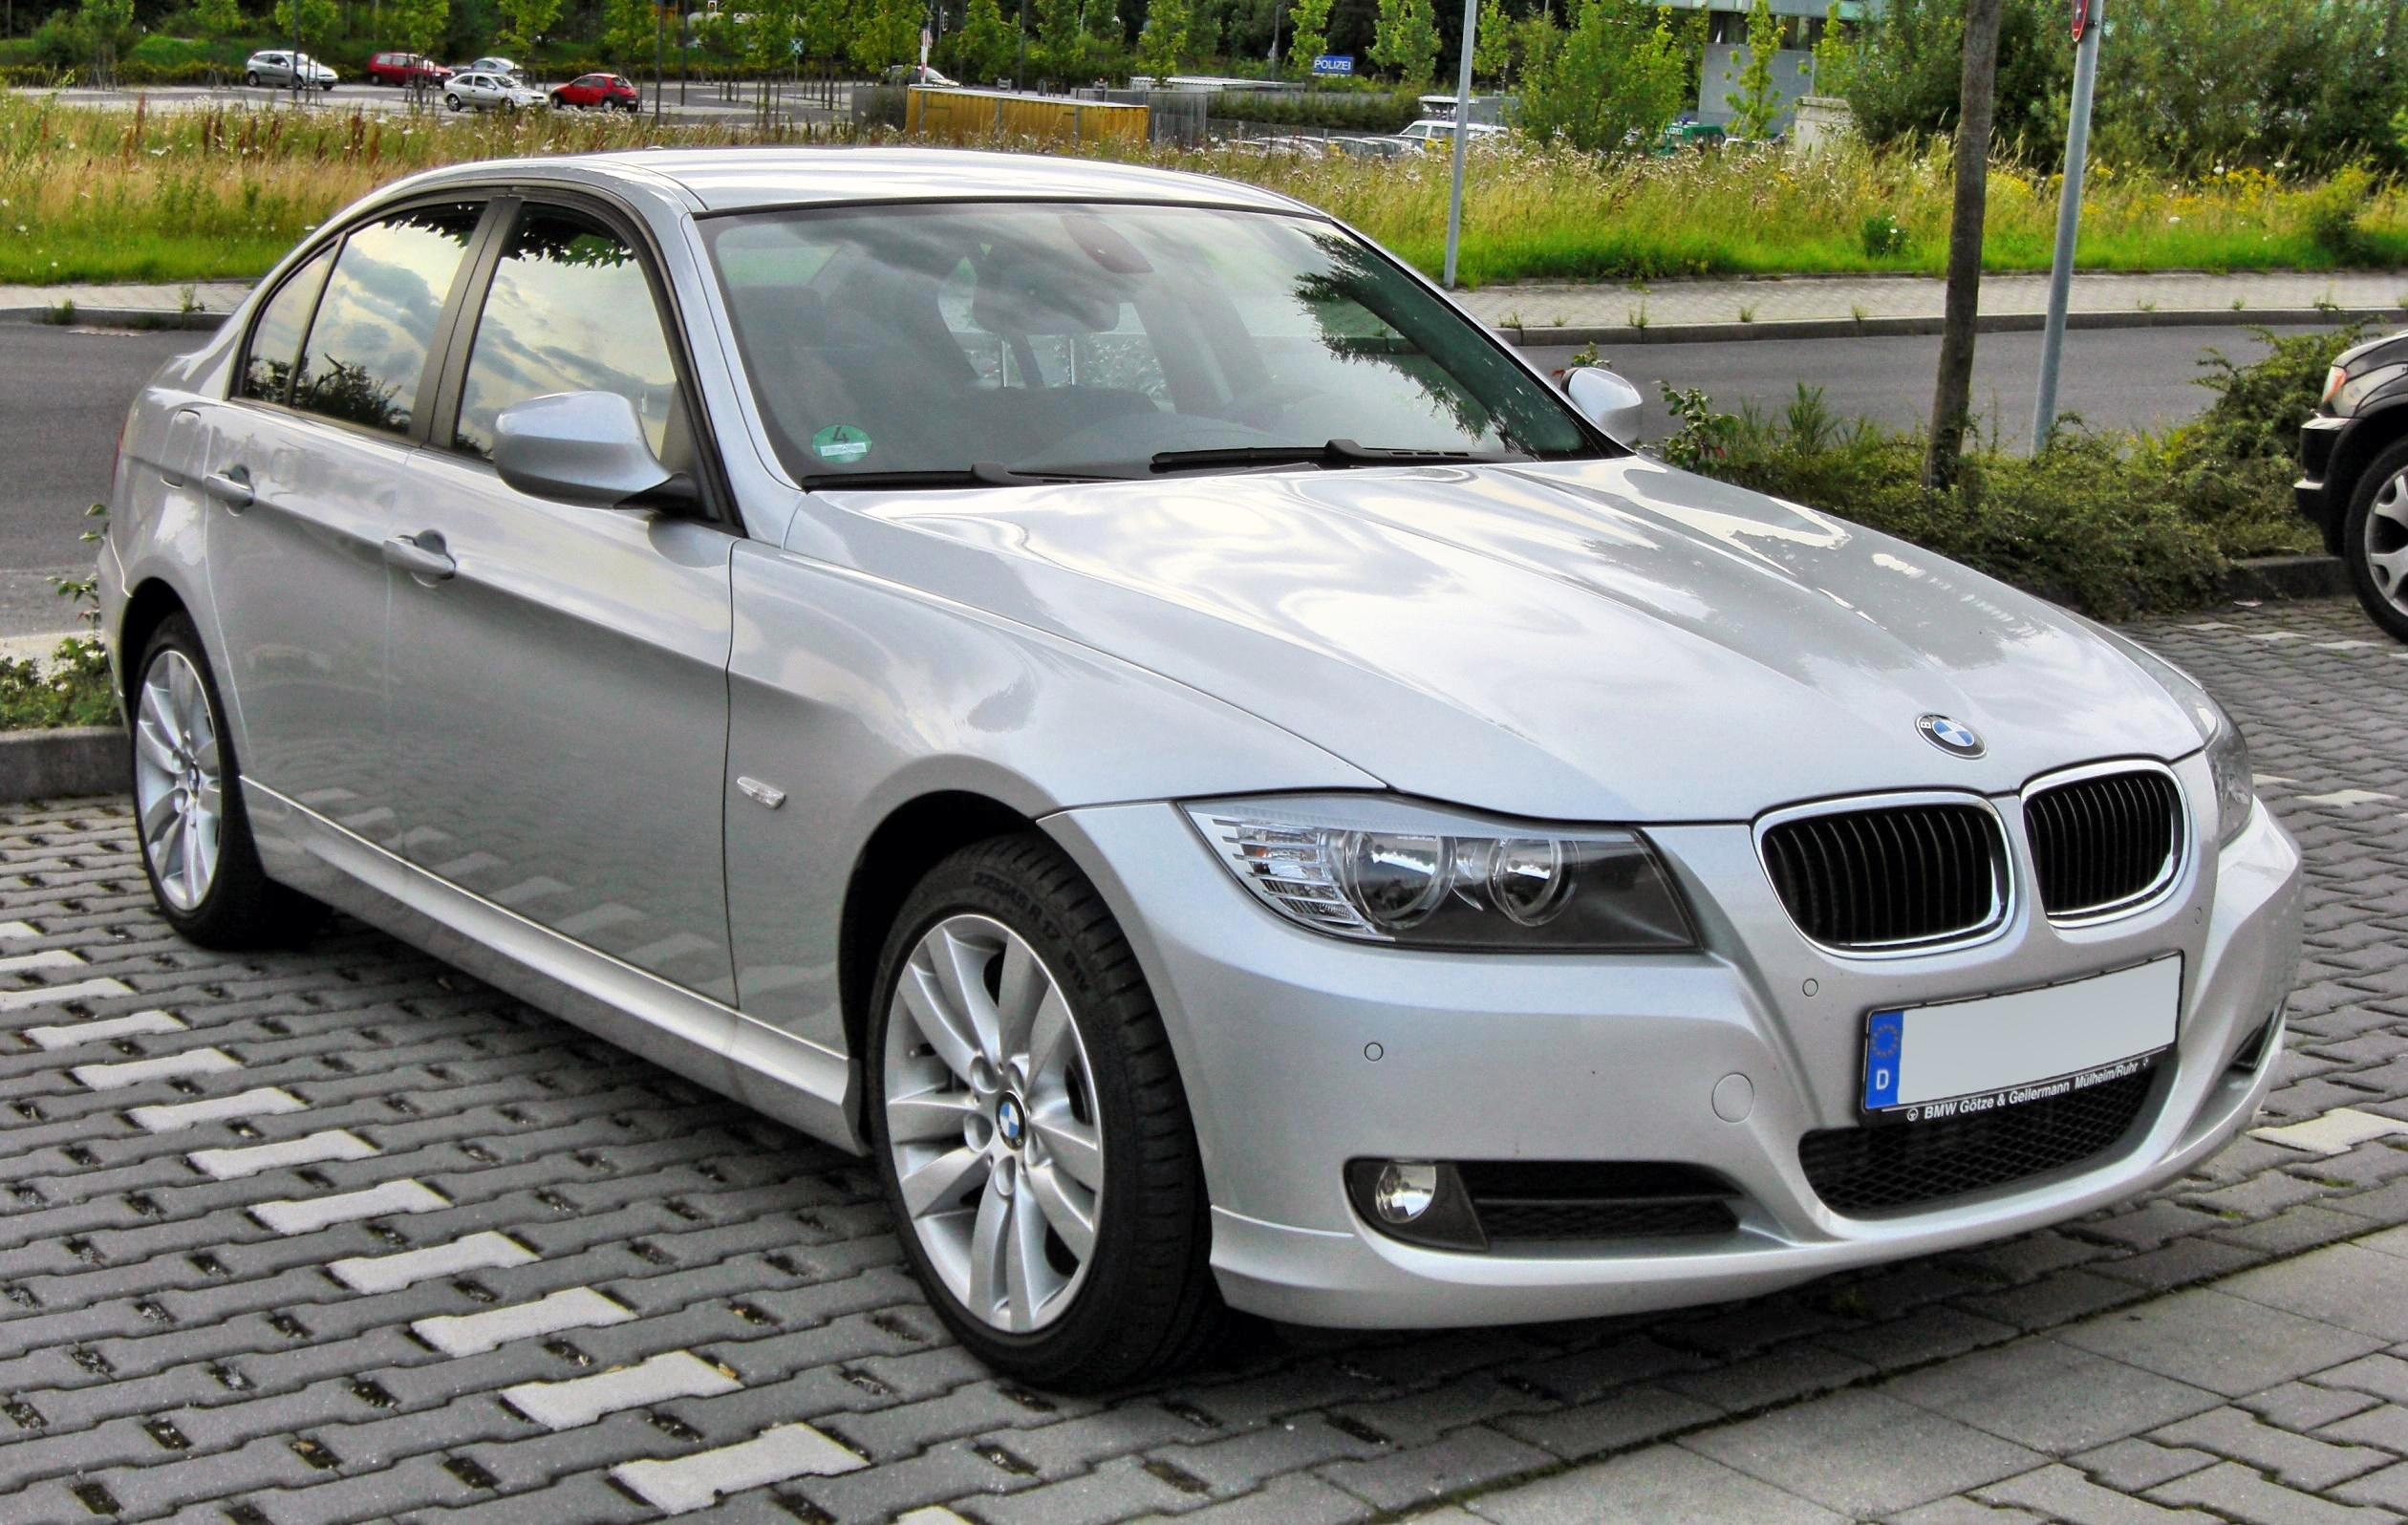 2010 bmw 3 series e90 pictures information and specs. Black Bedroom Furniture Sets. Home Design Ideas